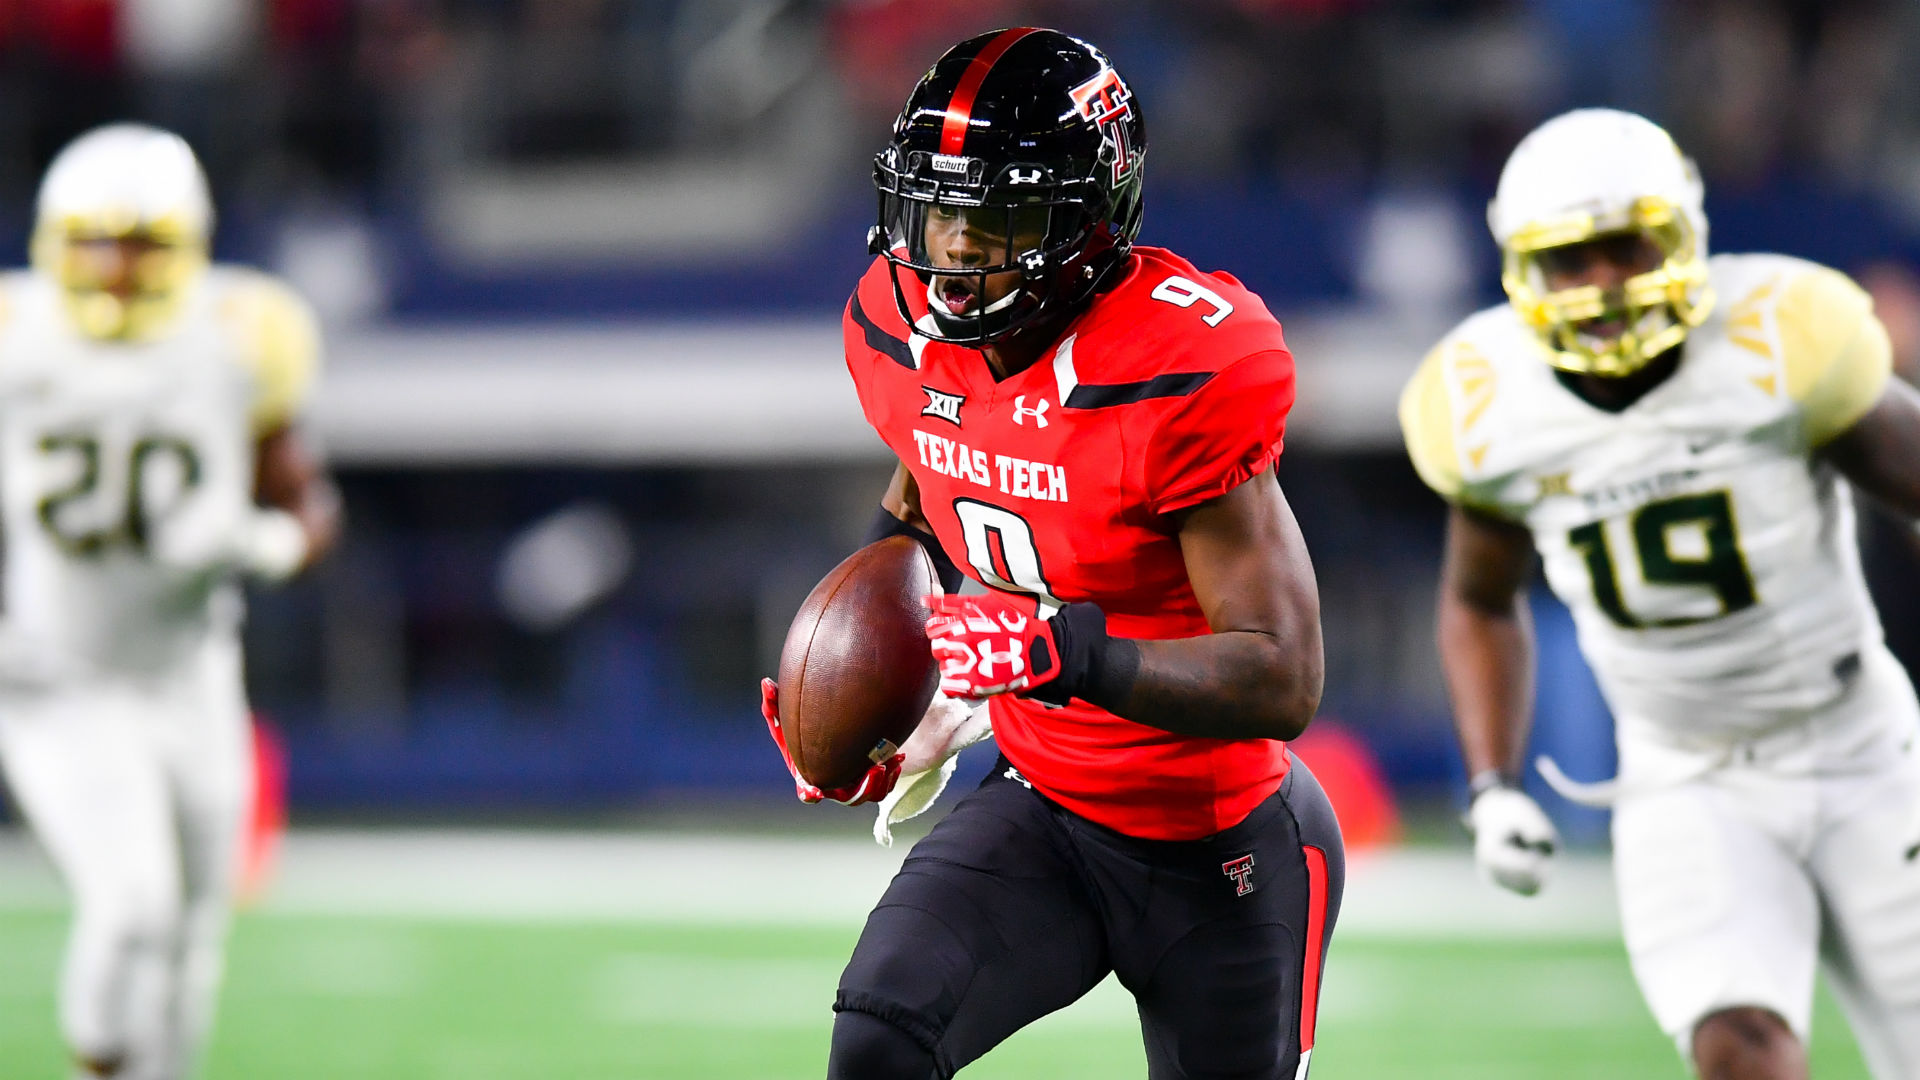 Texas Tech transfer WR Jonathan Giles picks new school